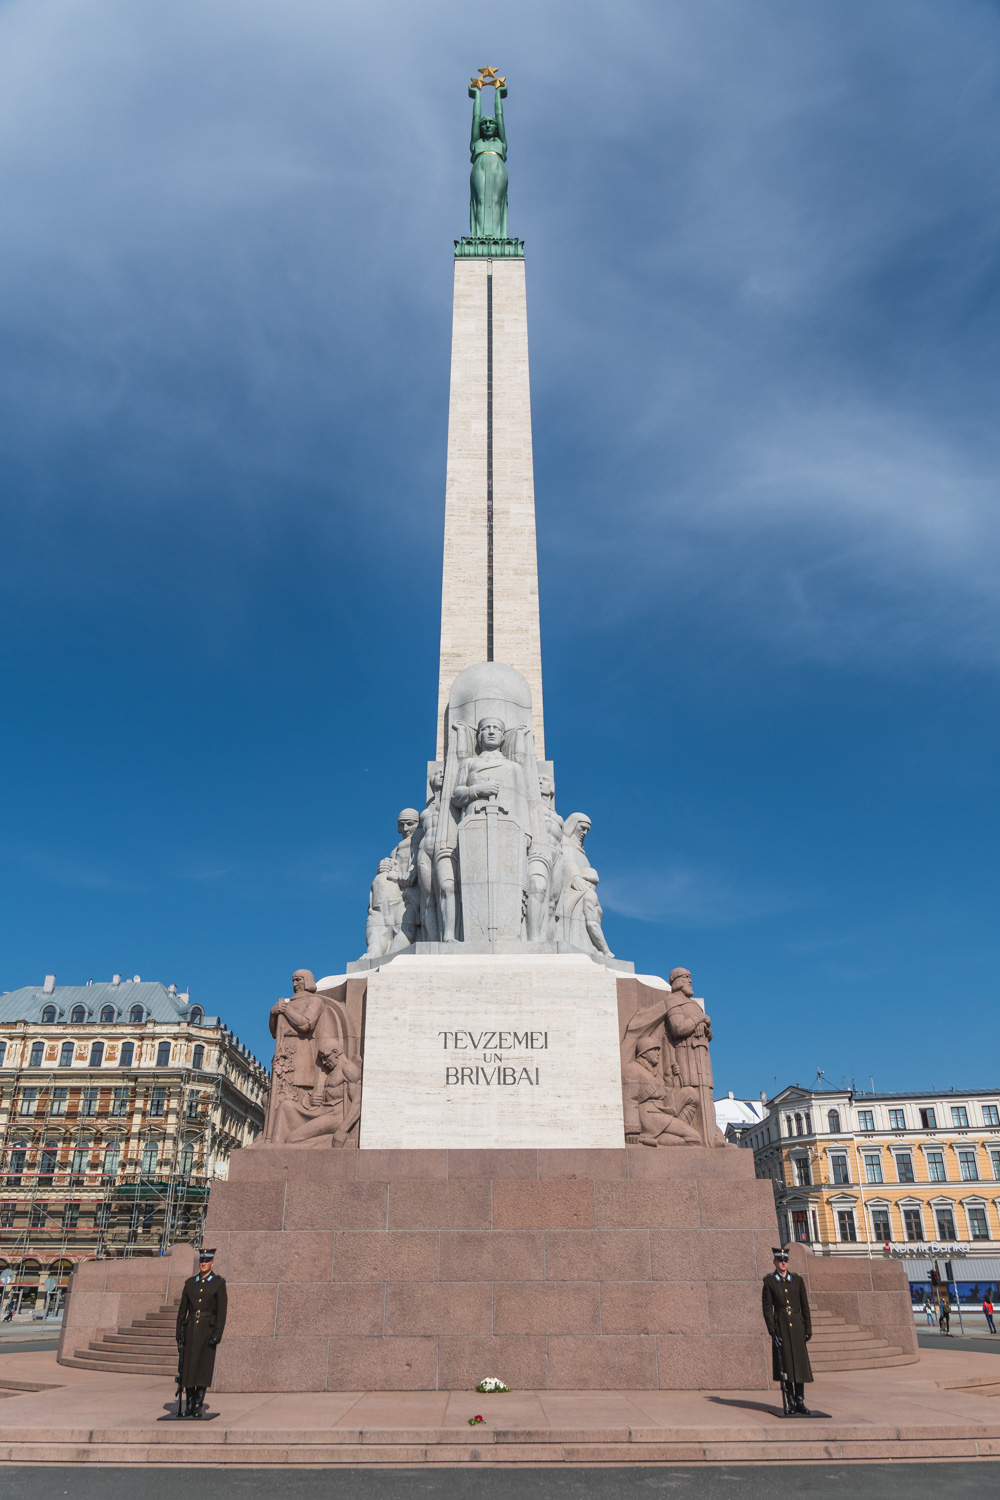 There are many other figures and stories told within the monument's carvings, all of which also had their meanings rewritten to Russian interpretation.